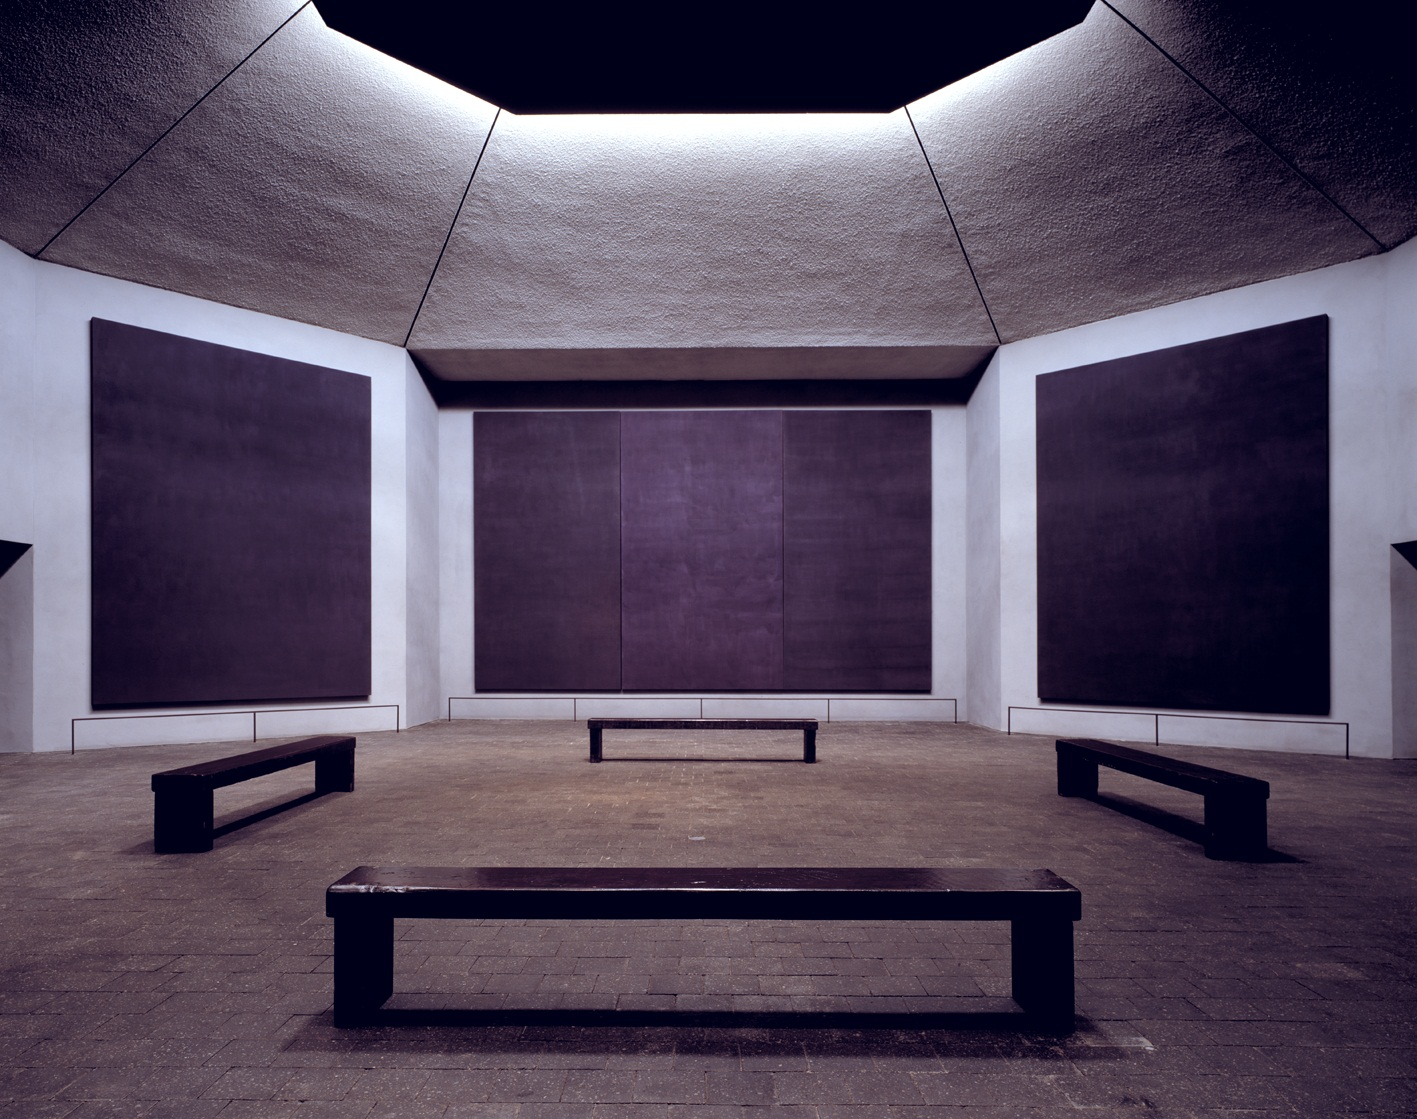 RX_1704_Souths Best Museums_Rothko Chapel